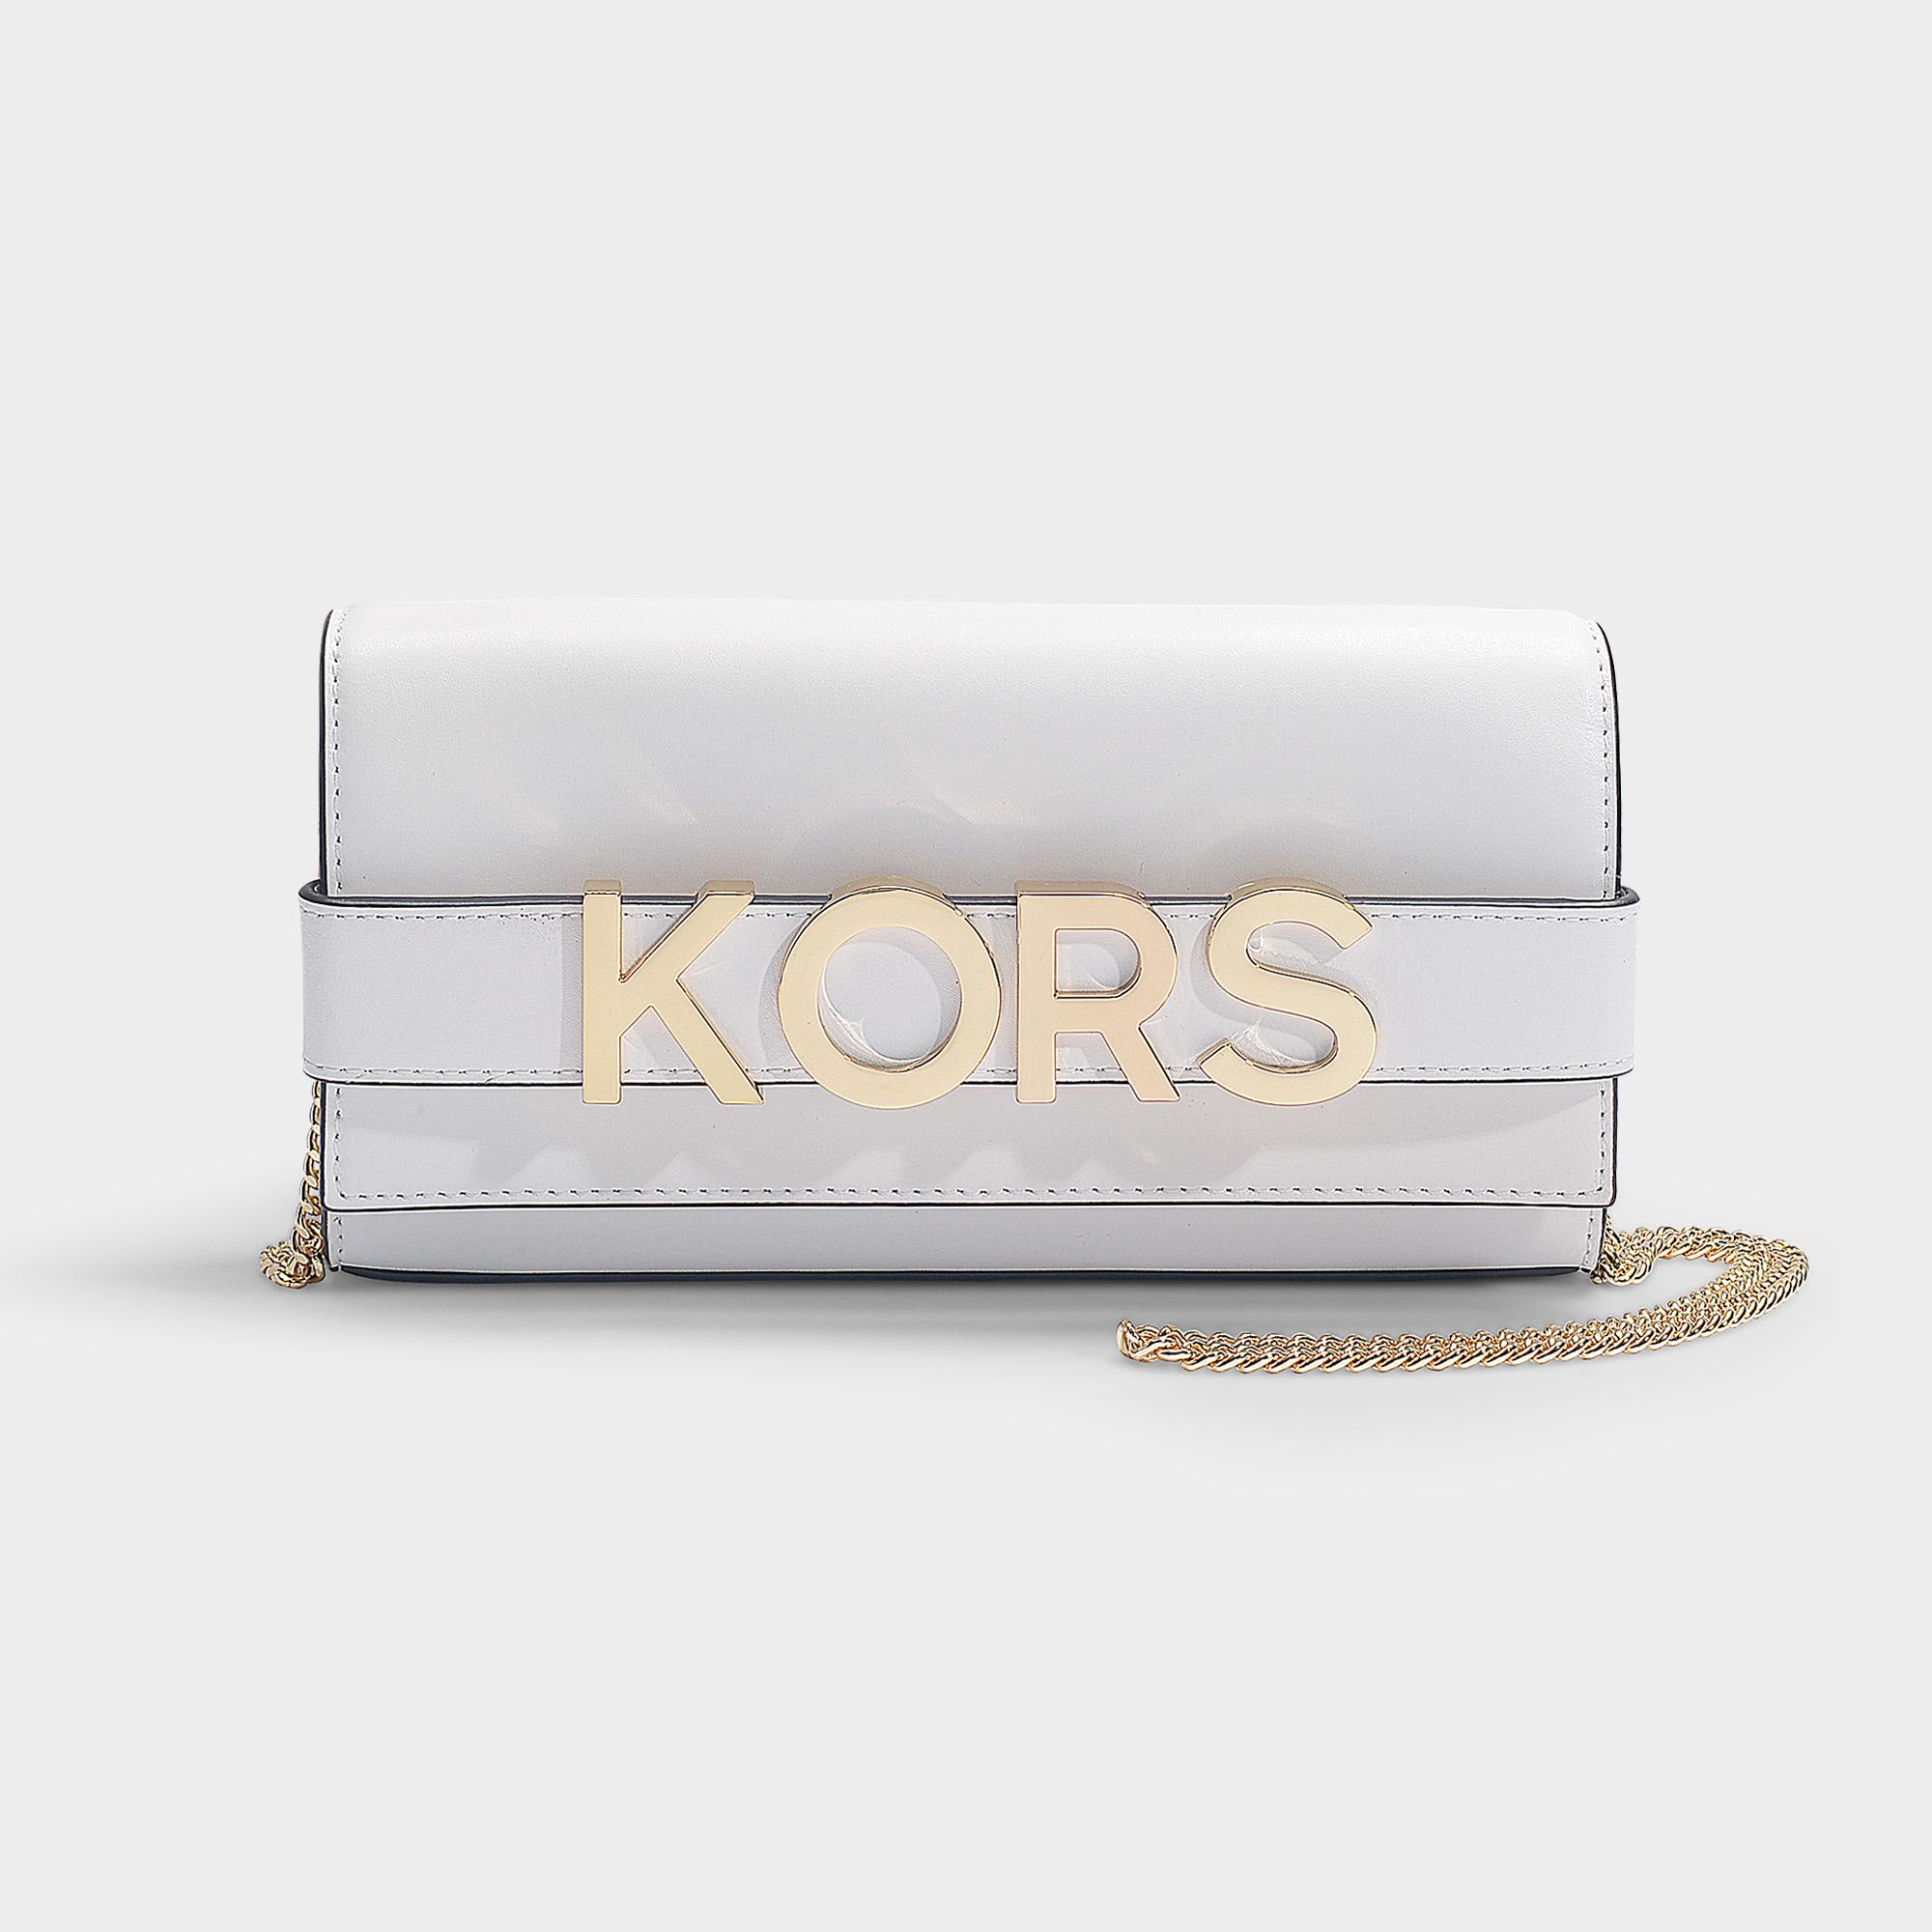 47e3dc5d0c1d MICHAEL Michael Kors. Women s Bellamie Large East west Strap Clutch Bag In Optic  White Calfskin